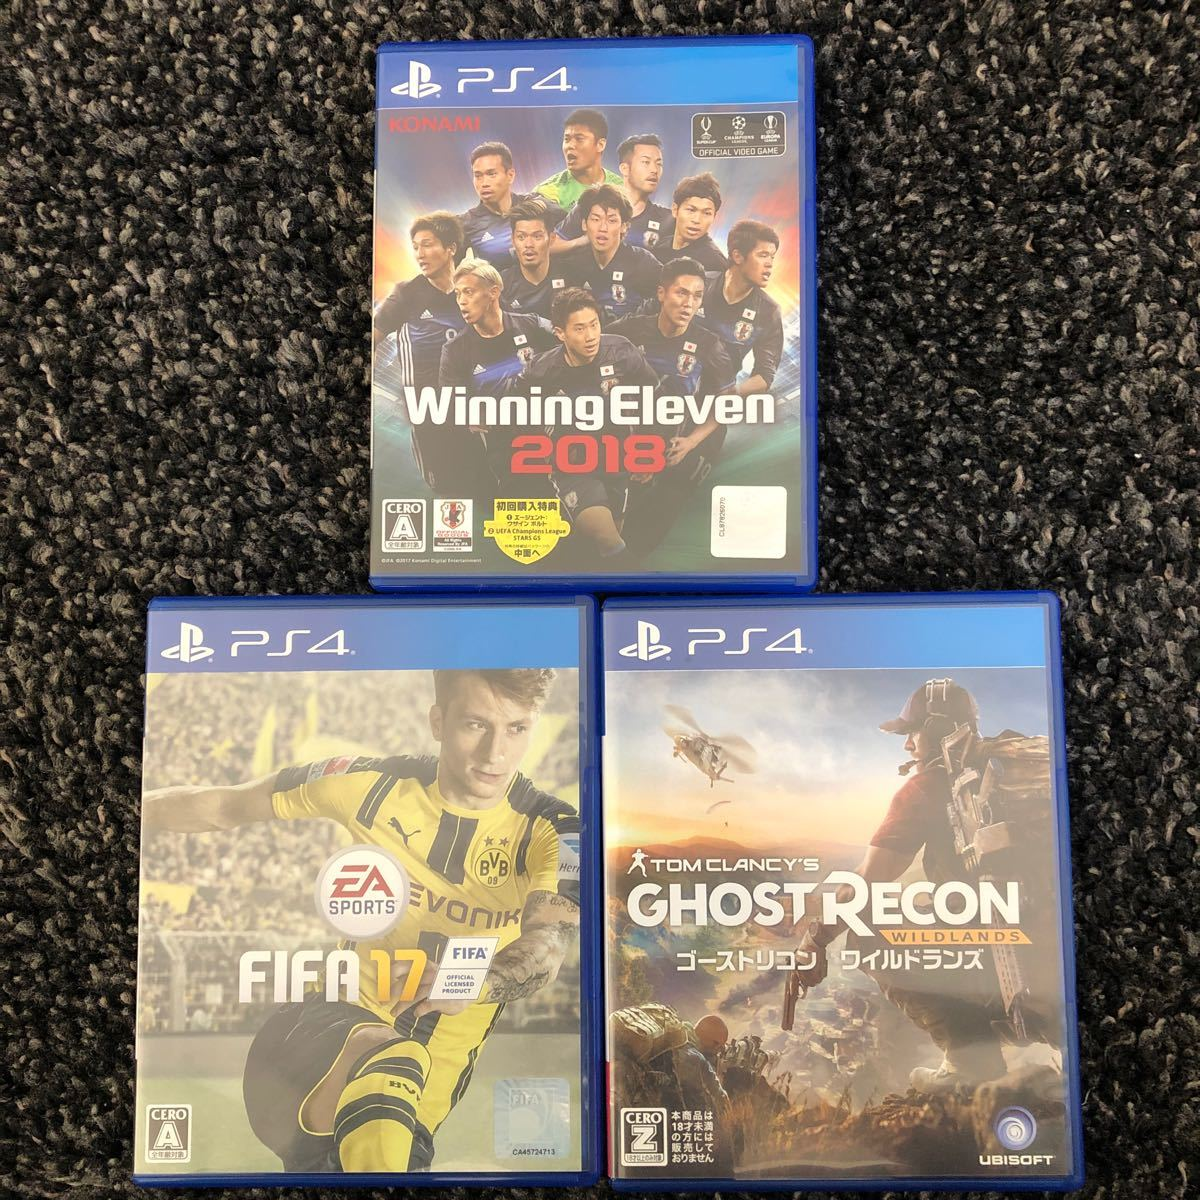 【PS4】 ウイニングイレブン 2018、FIFA17、GHOST RECON 3点セット